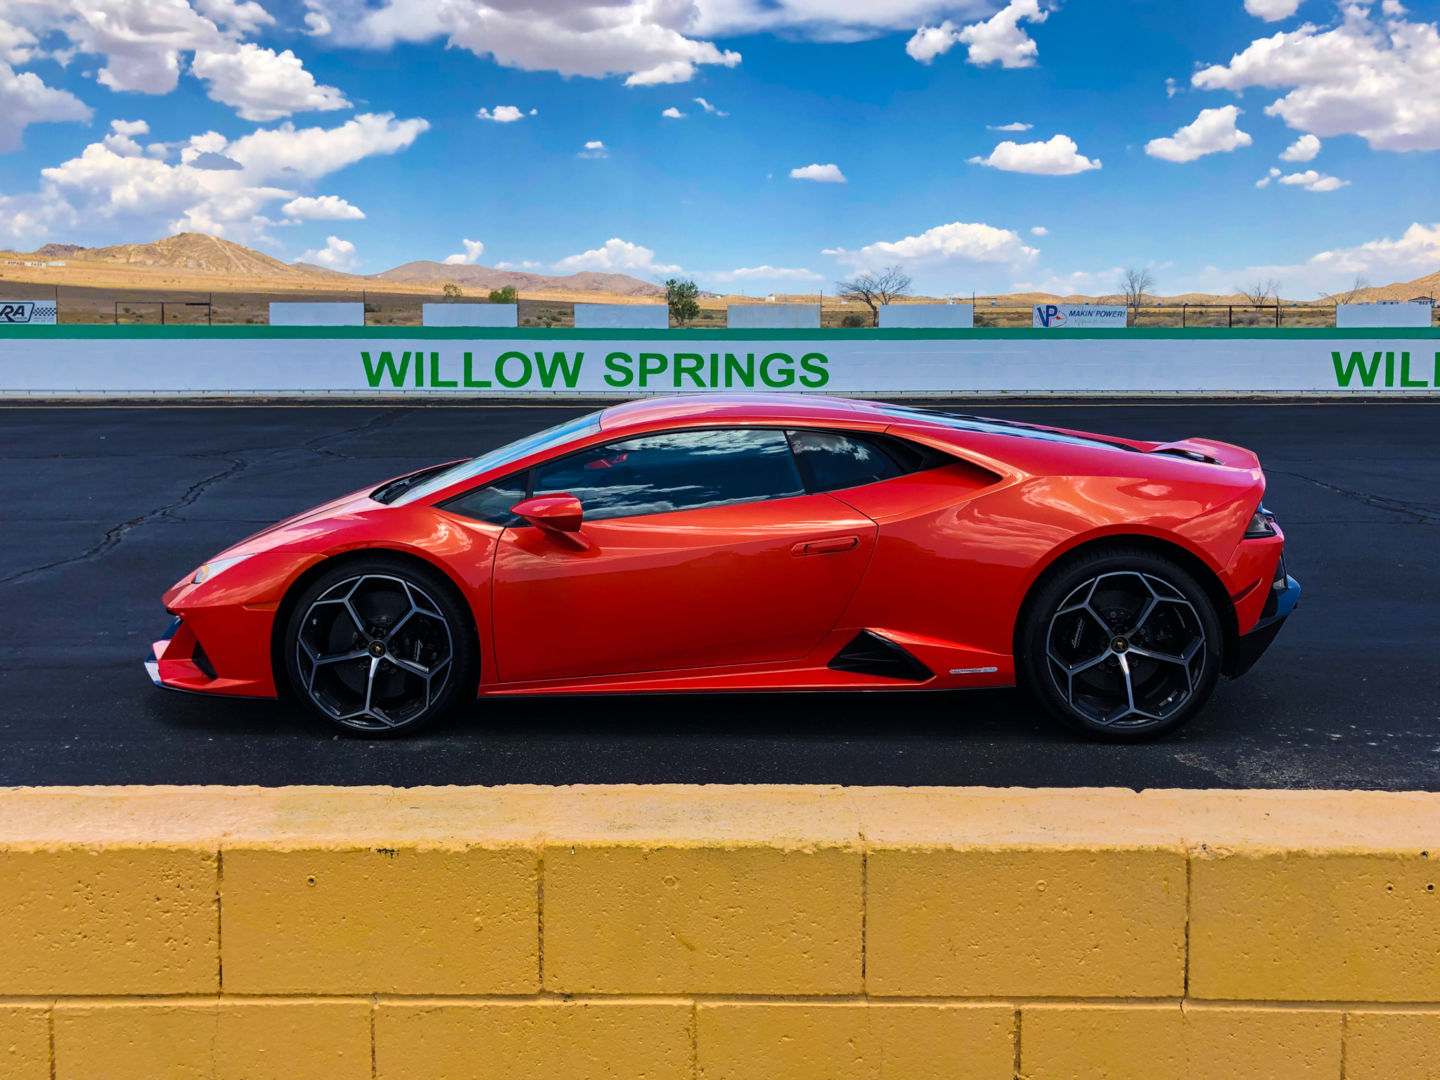 The Lamborghini Huracán Evo is actually proof of intelligent design Lamborghini-Huracan-Evo-1-1440x1080